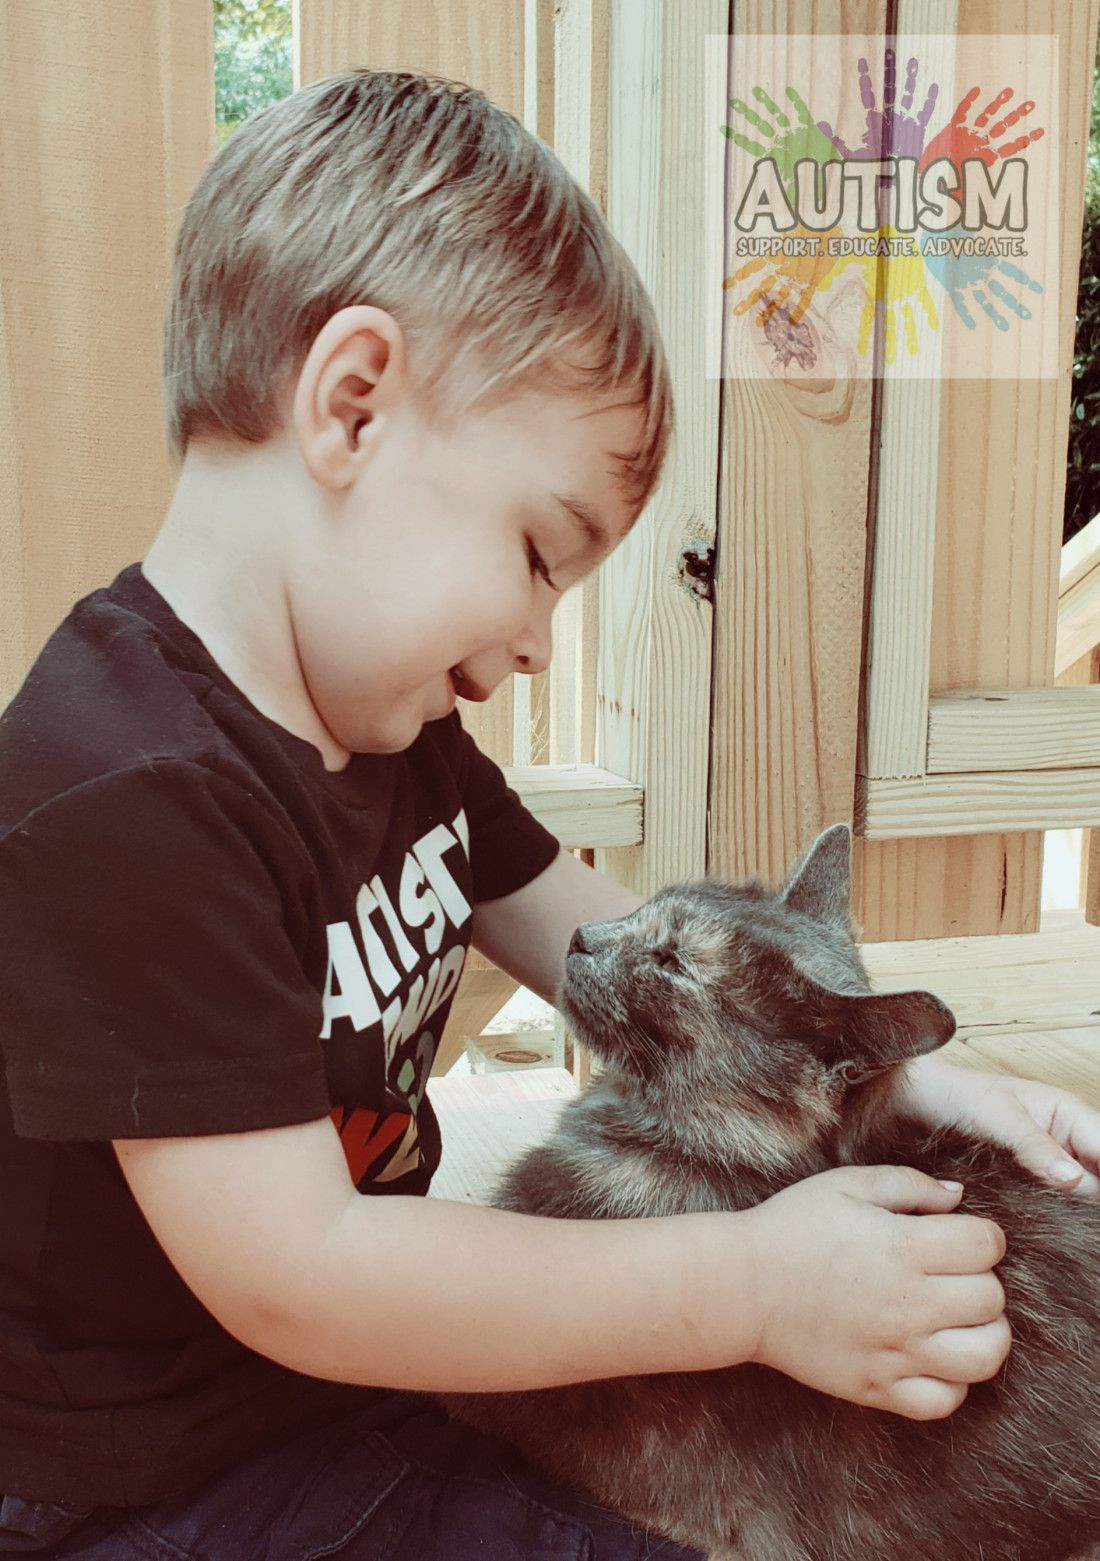 The Fox and the Cat Cats, Living with autism, Autism support